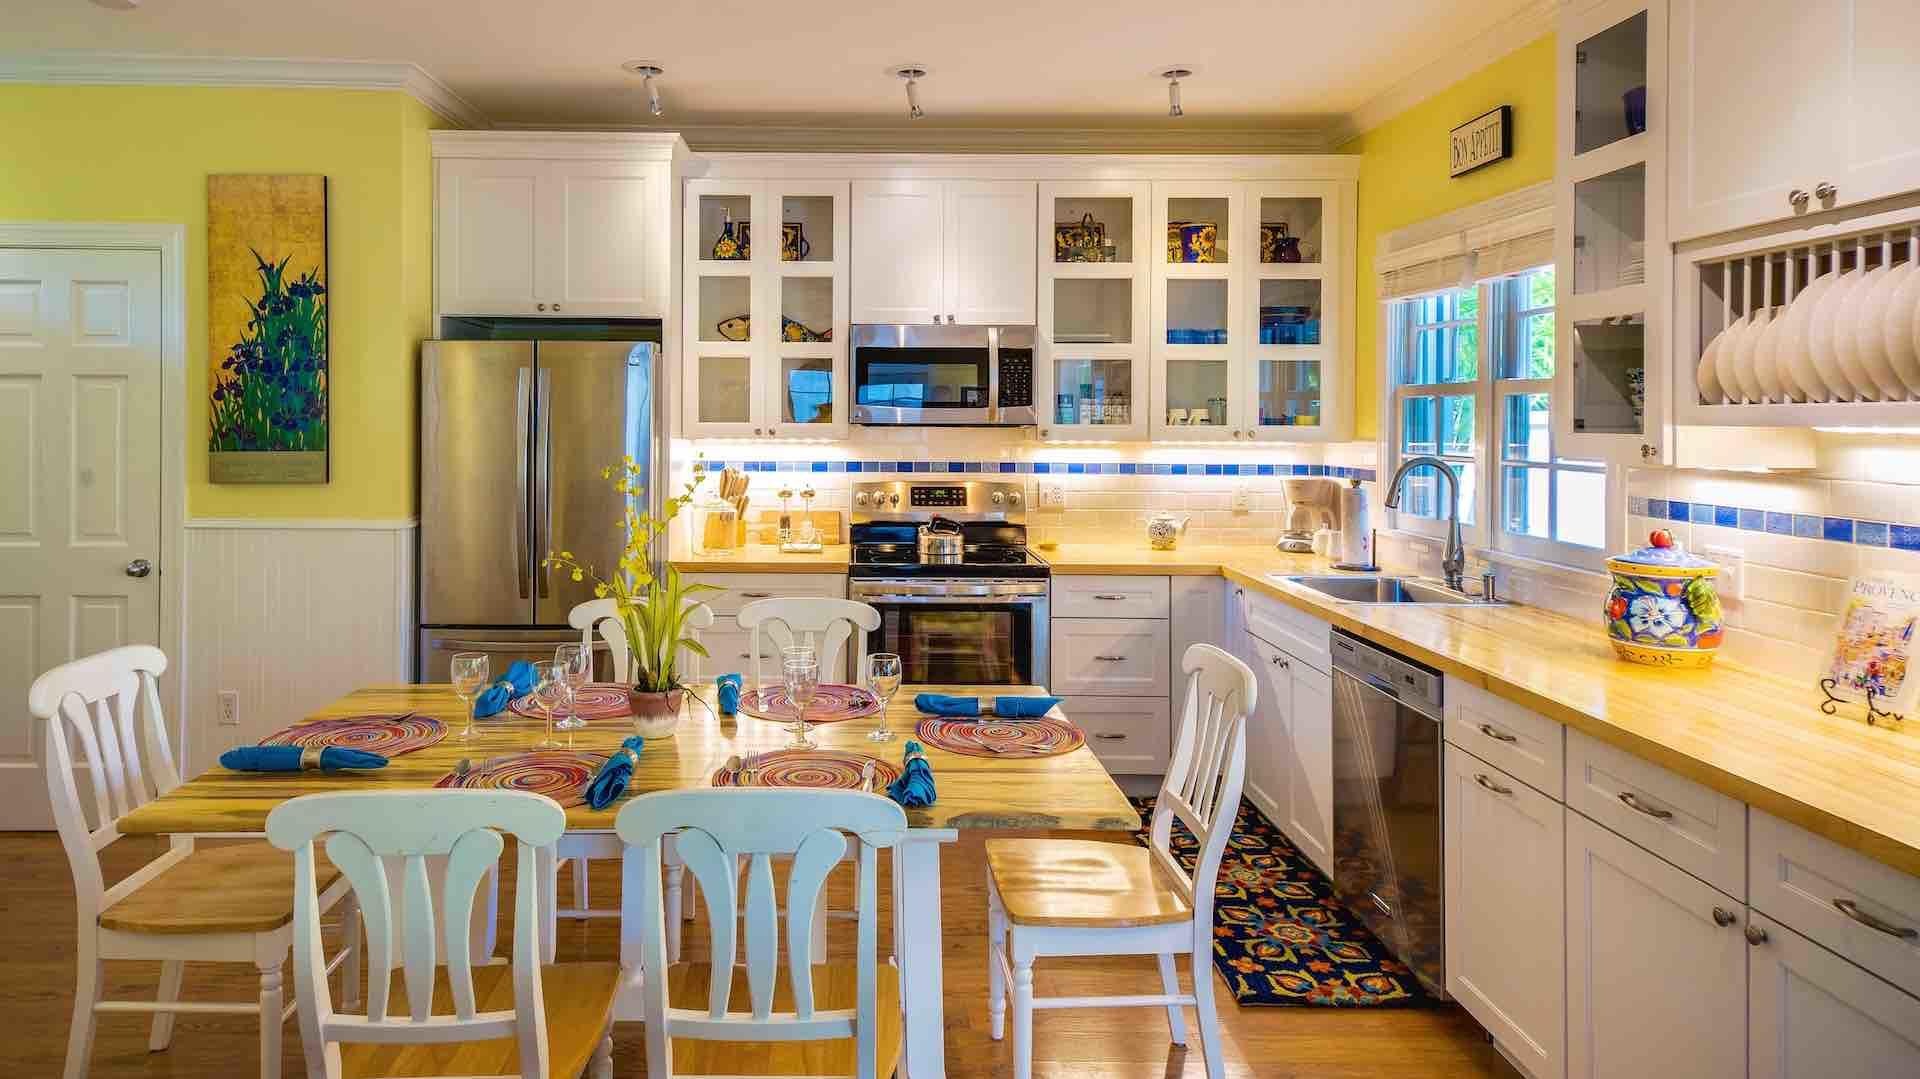 The kitchen features top-of-the-line appliances & everything a good chef demands...